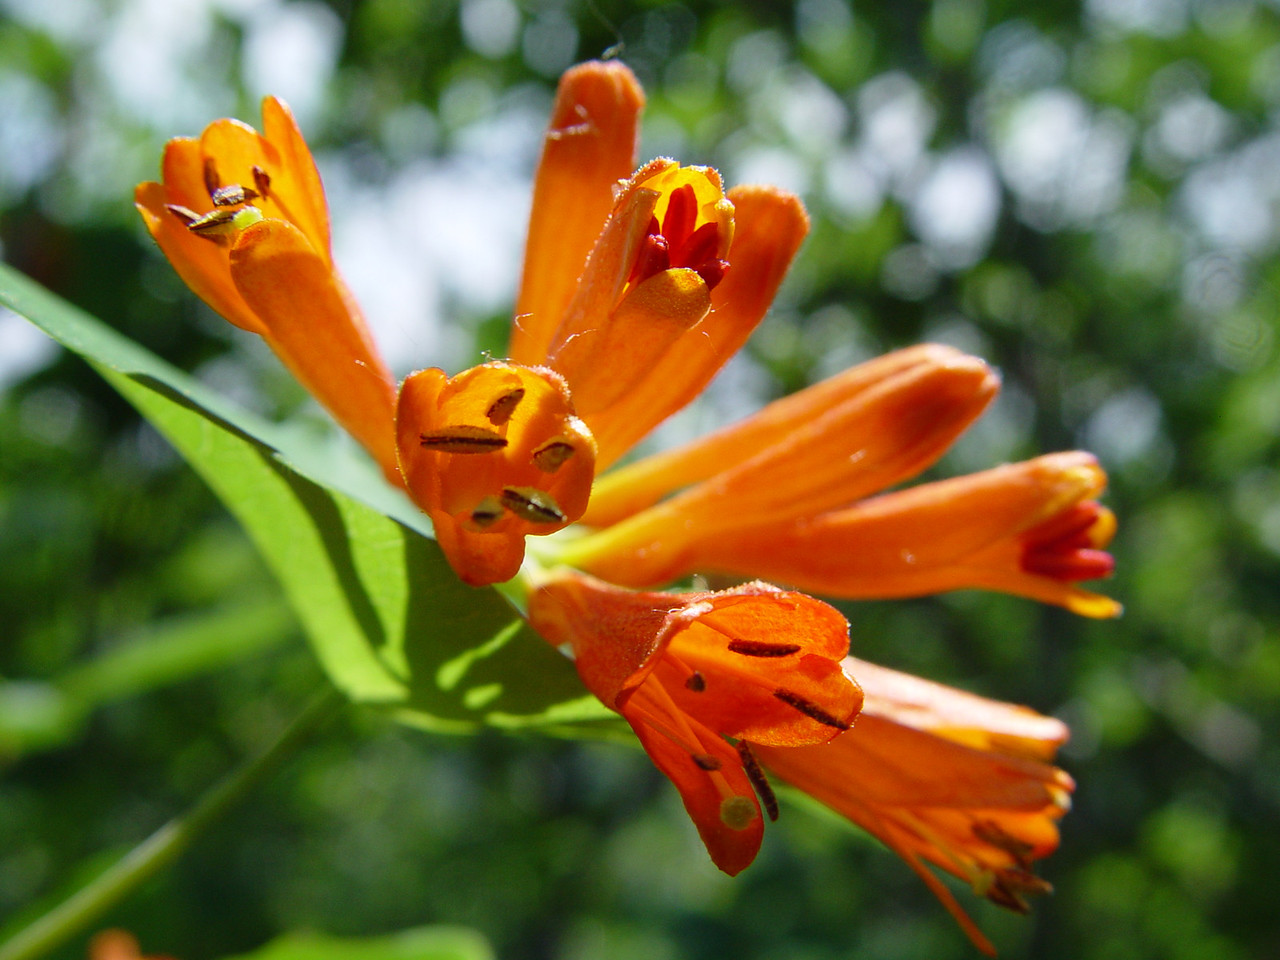 Lonicera ciliosa - Orange Honeysuckle